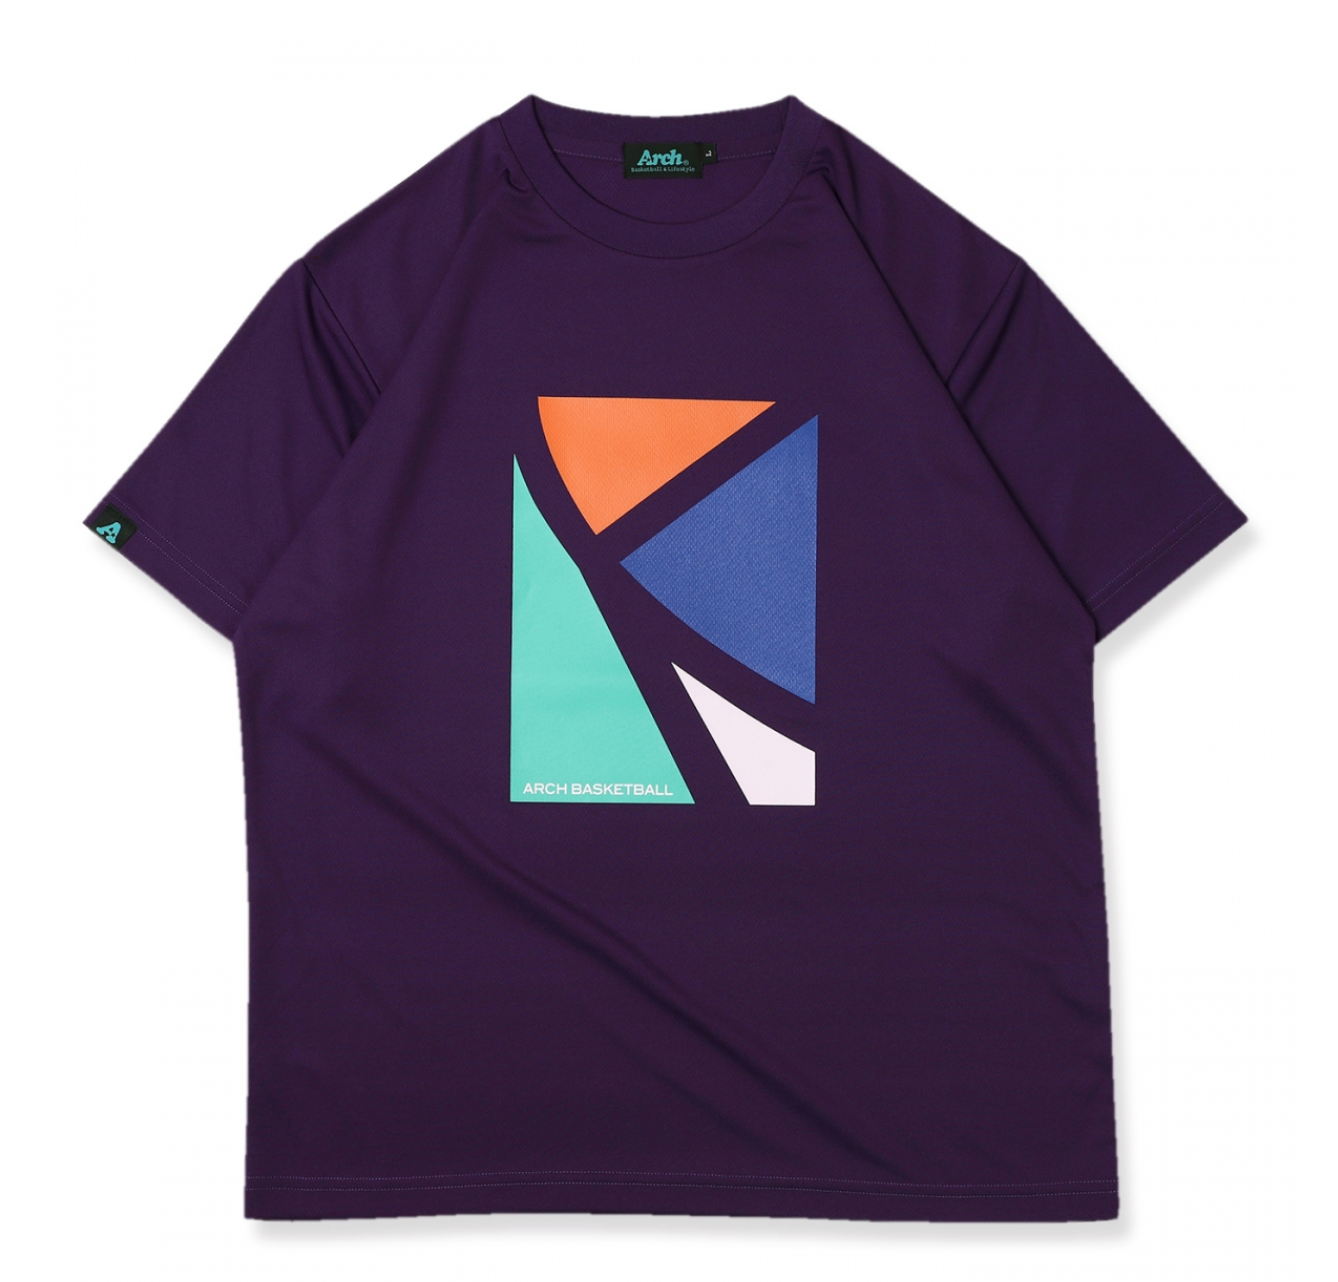 Arch elbow tee【purple】のイメージ